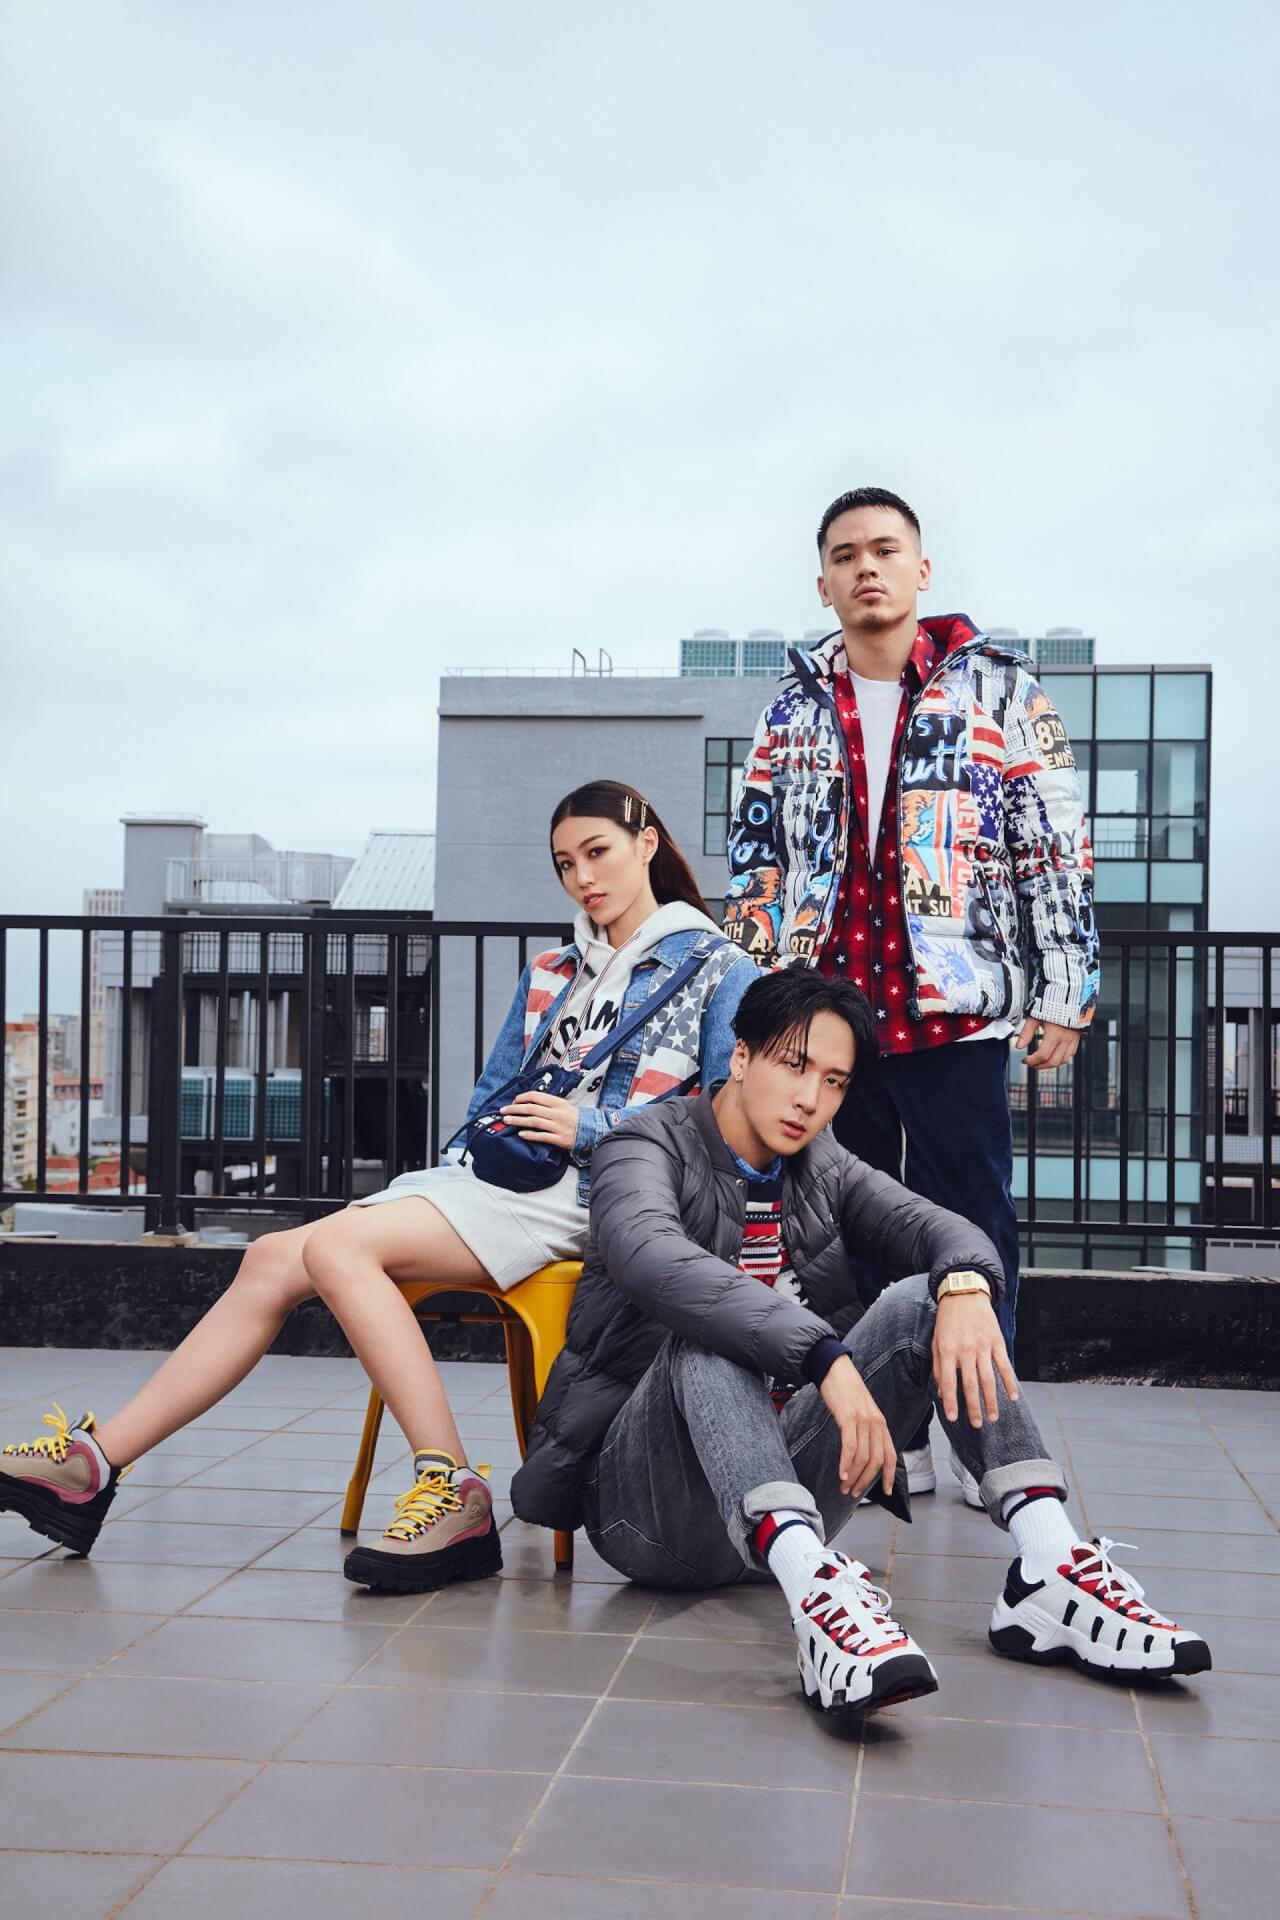 BAD HOP・T-Pablowや韓国人ラッパー・RAVIなどを起用したTOMMY JEANS 2019 Fall Collectionのビジュアルが公開 lifefashion191011_tommyjeans_4